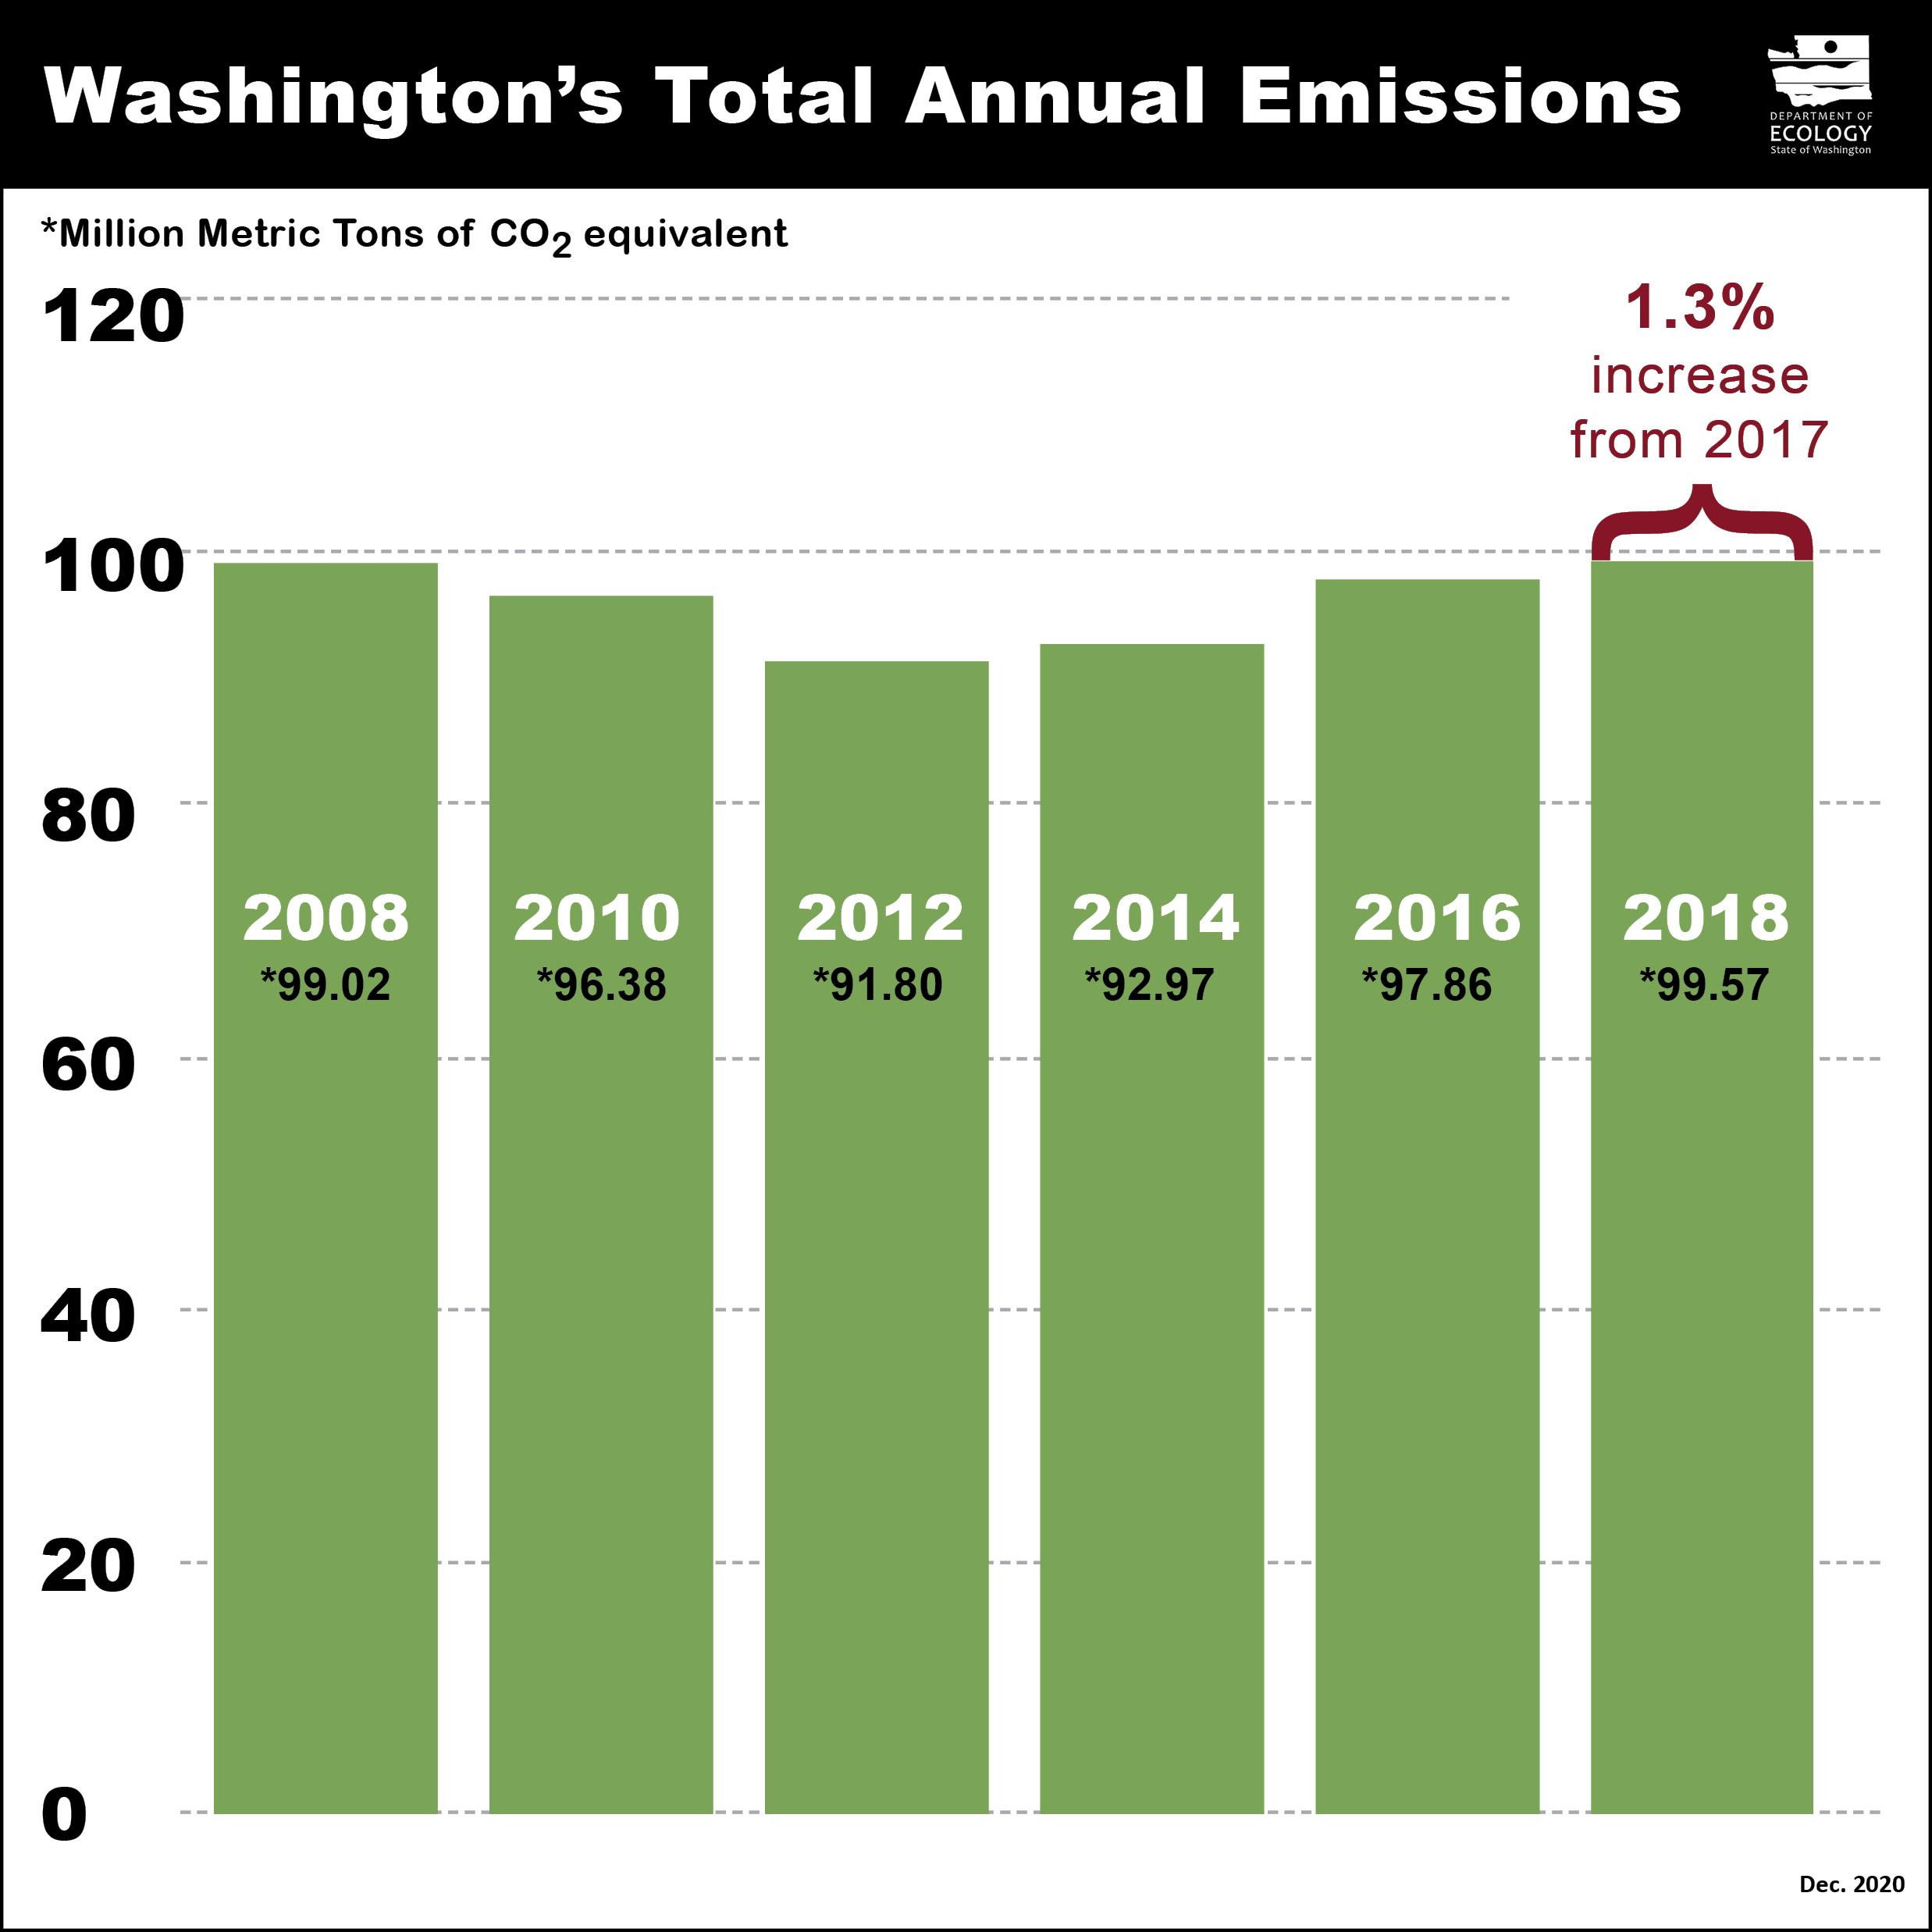 A bar chart showing greenhouse gas emissions in Washington between 2008 and 2018.